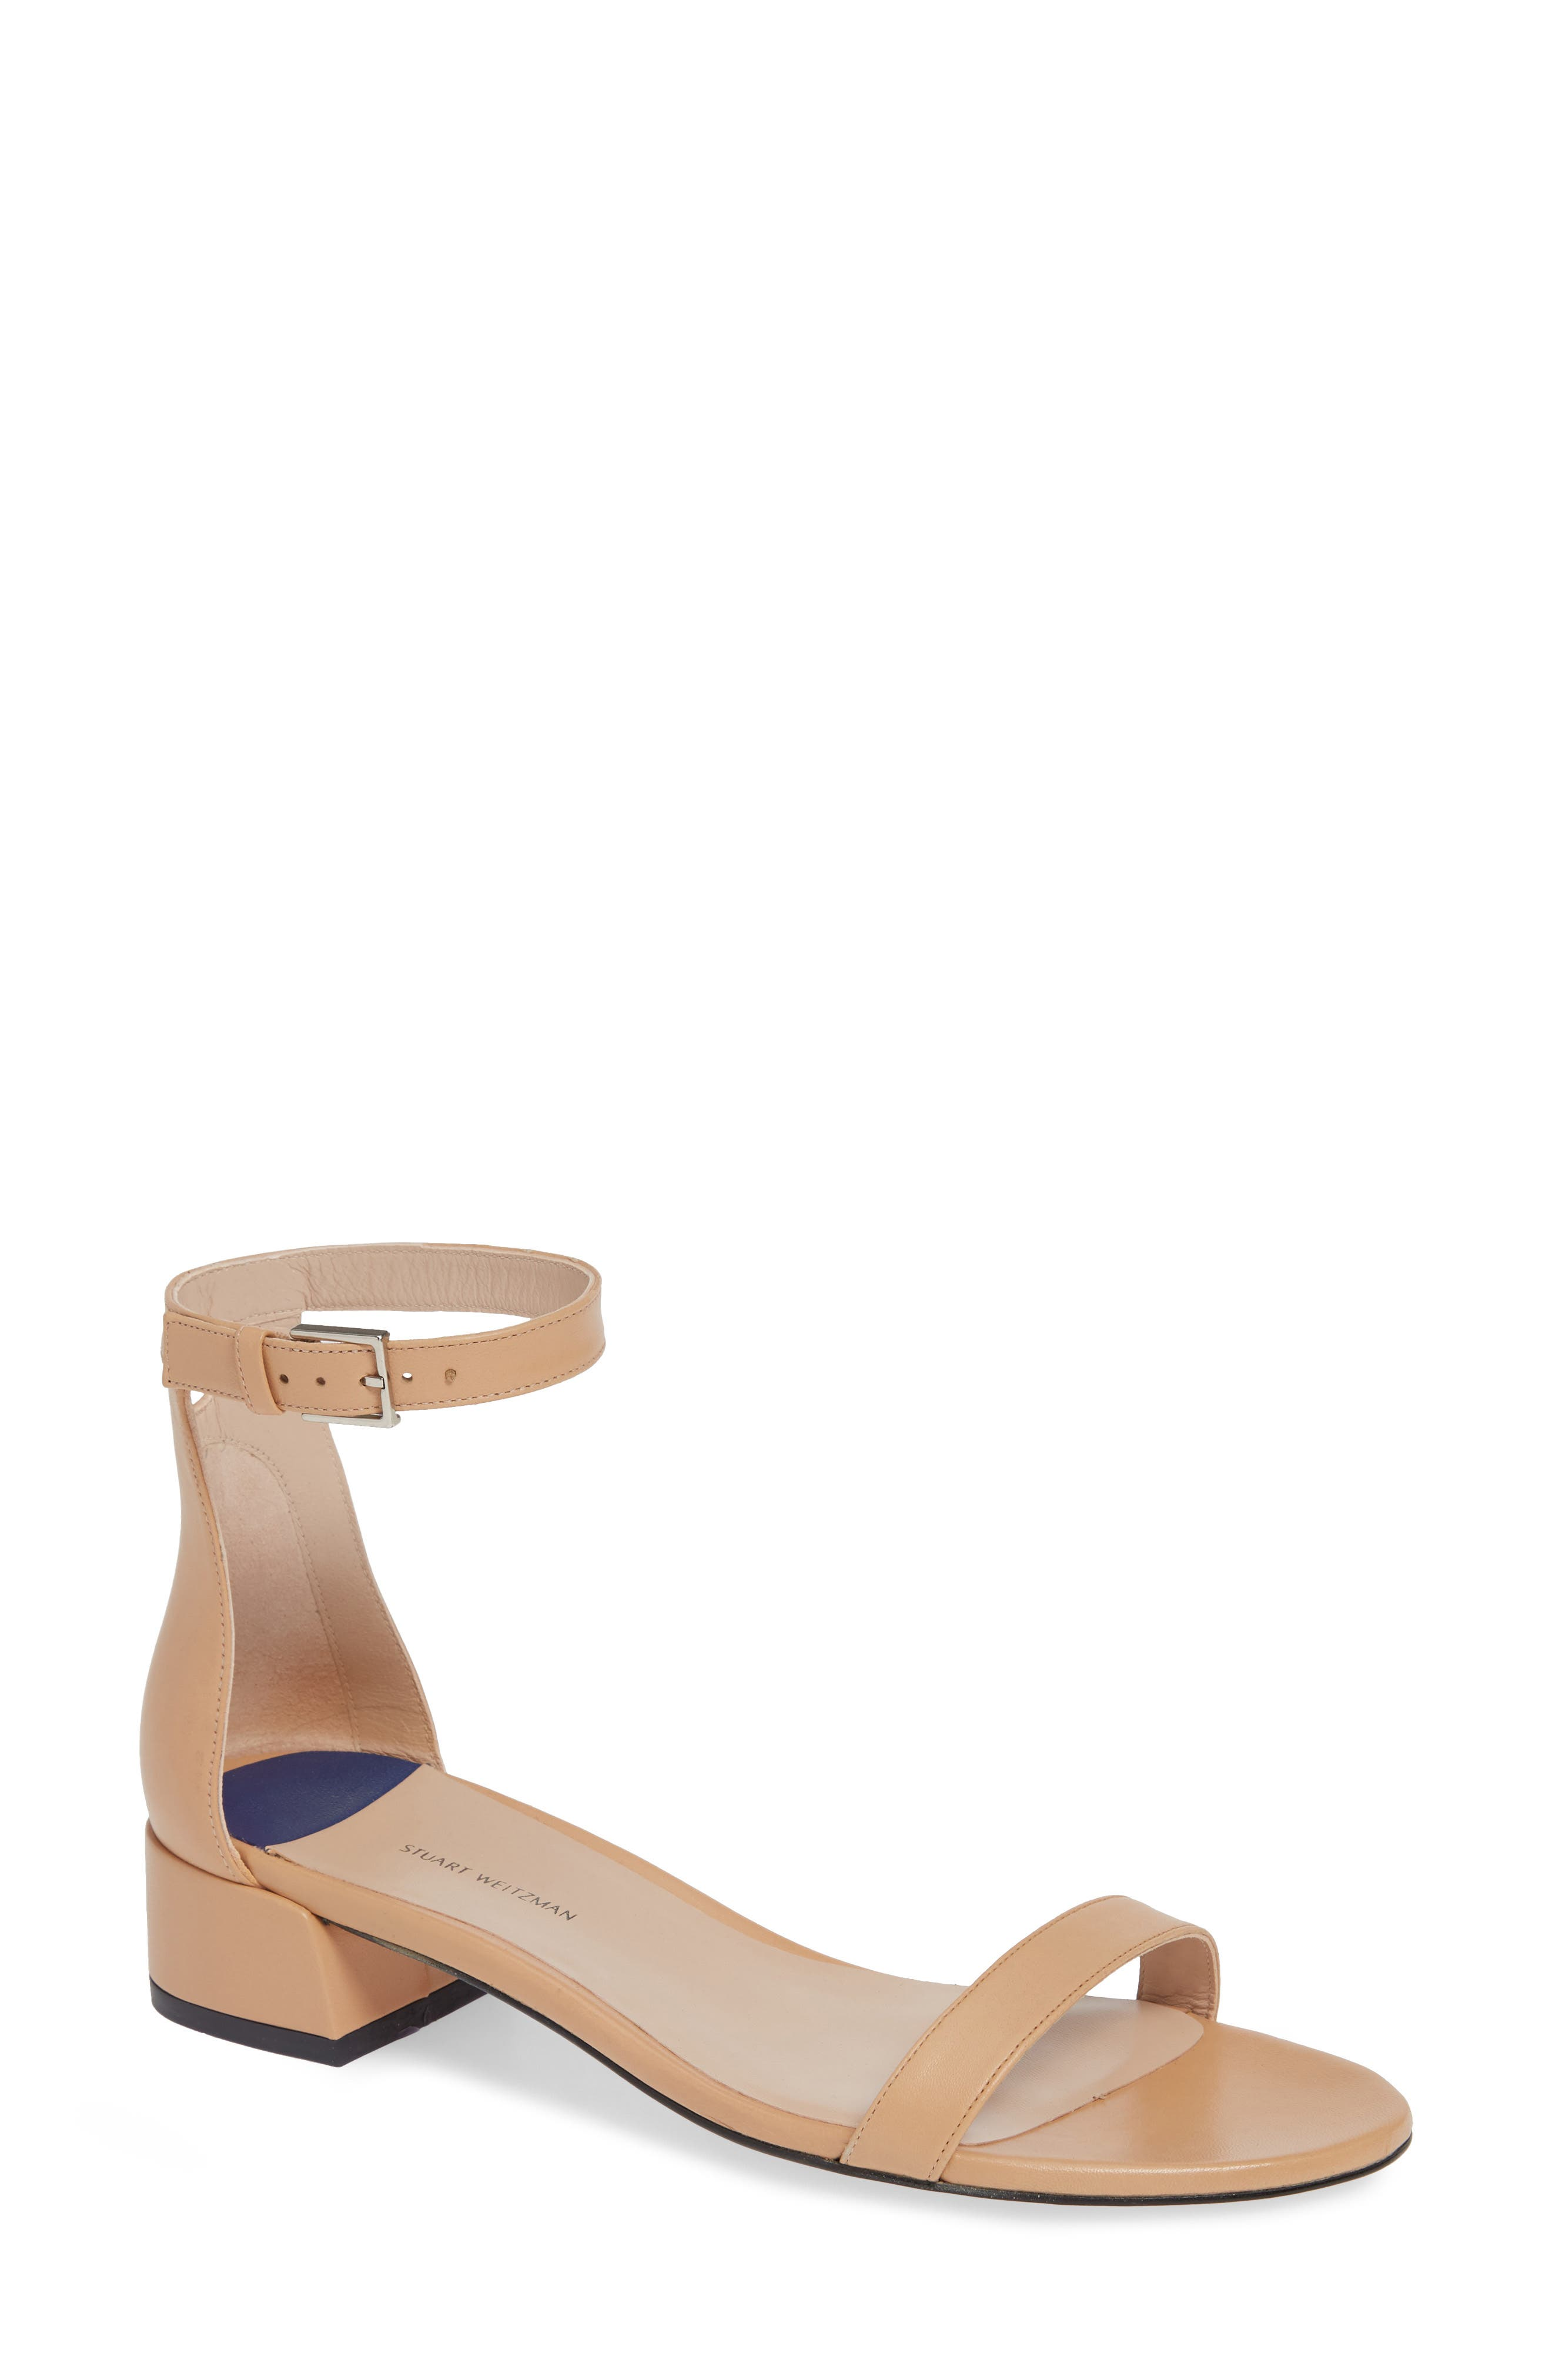 STUART WEITZMAN,                             Nudist Sandal,                             Main thumbnail 1, color,                             273